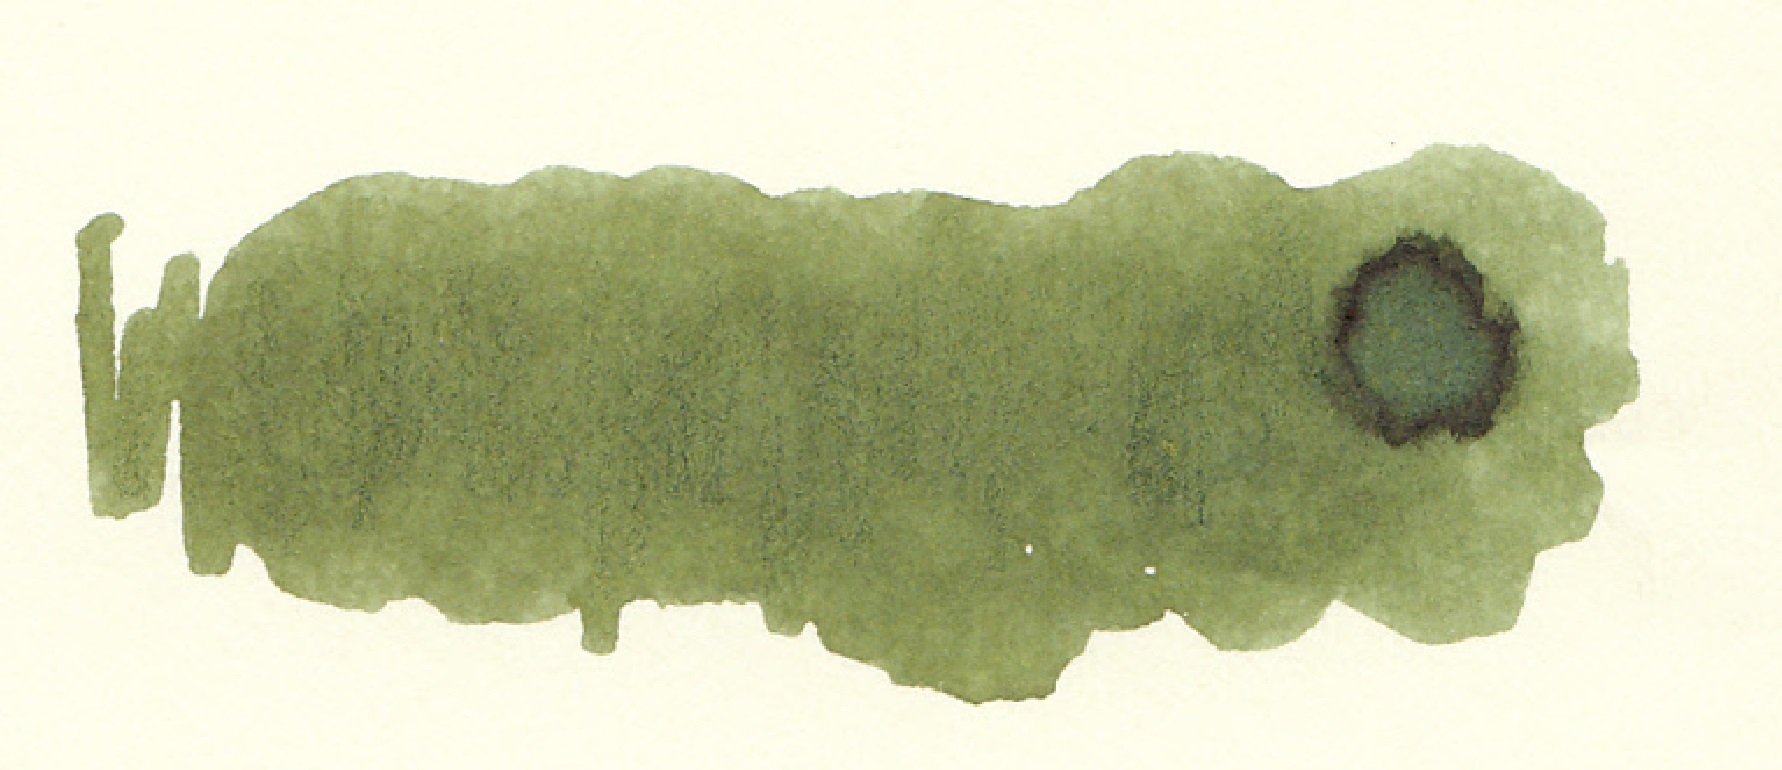 fpn_1463168266__classicgreen_diamine_tom